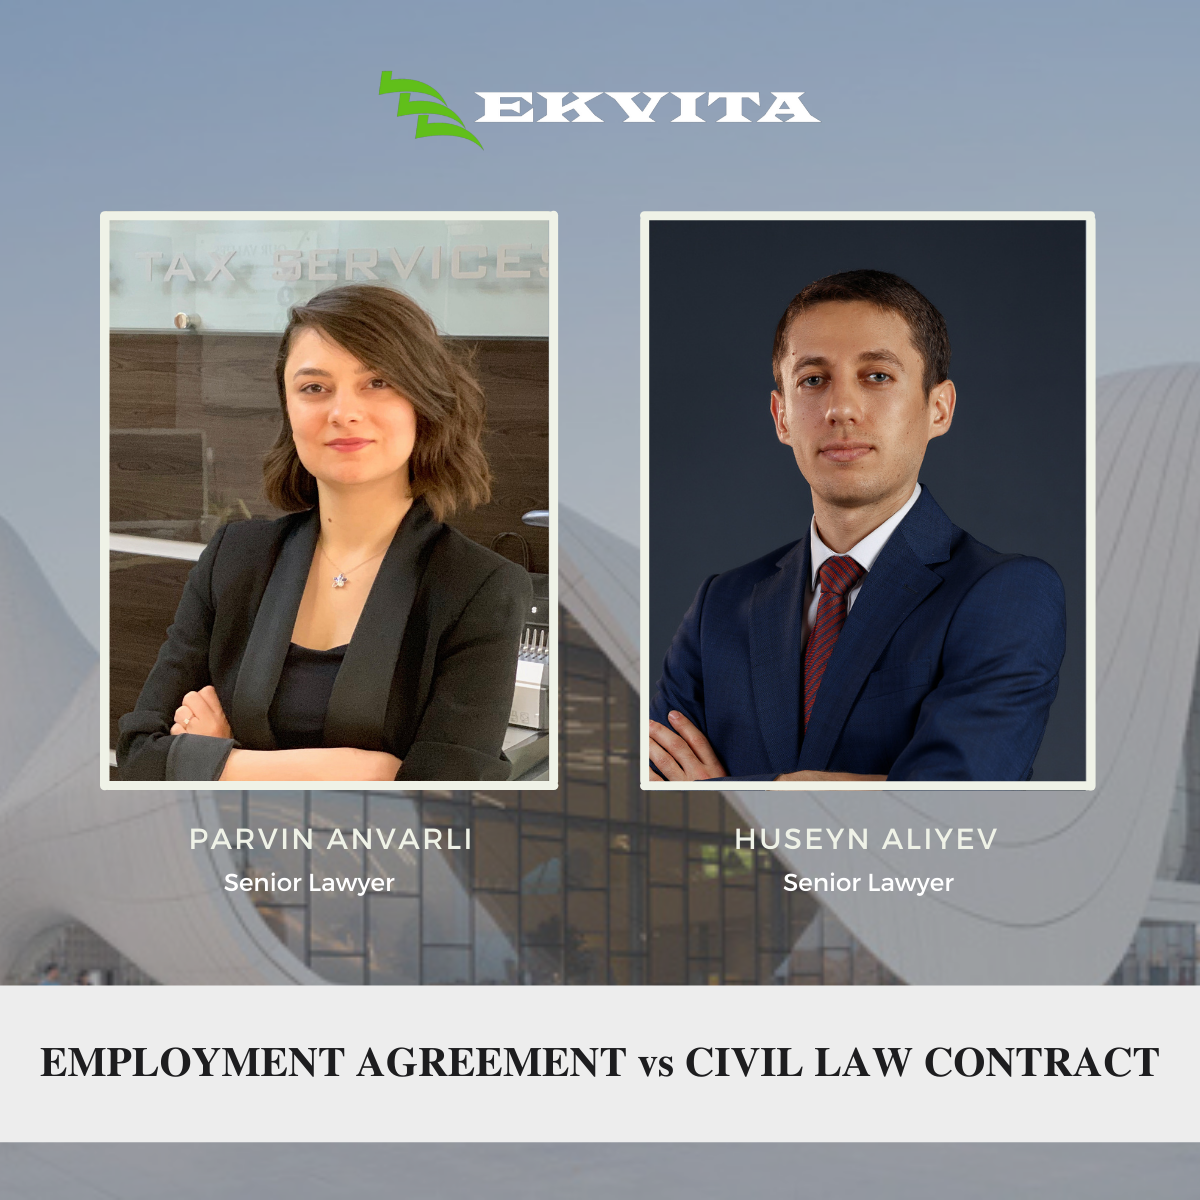 EMPLOYMENT AGREEMENT vs CIVIL LAW CONTRACT